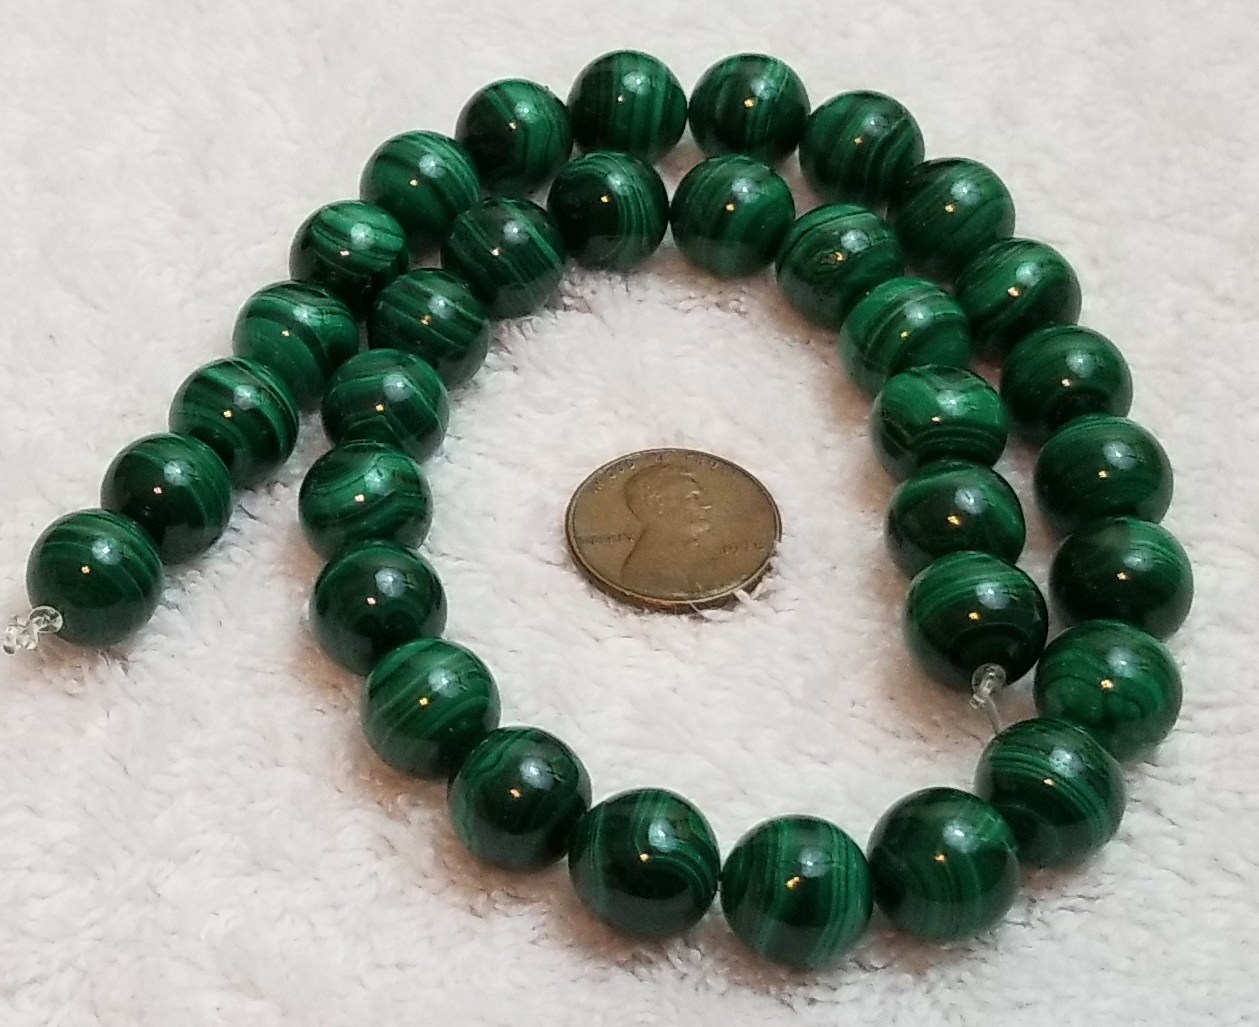 R-F-MAL-03052018 Genuine Malachite Smooth Round Loose Beads Size 12mm Approx 15.5/'/' Long per Strand